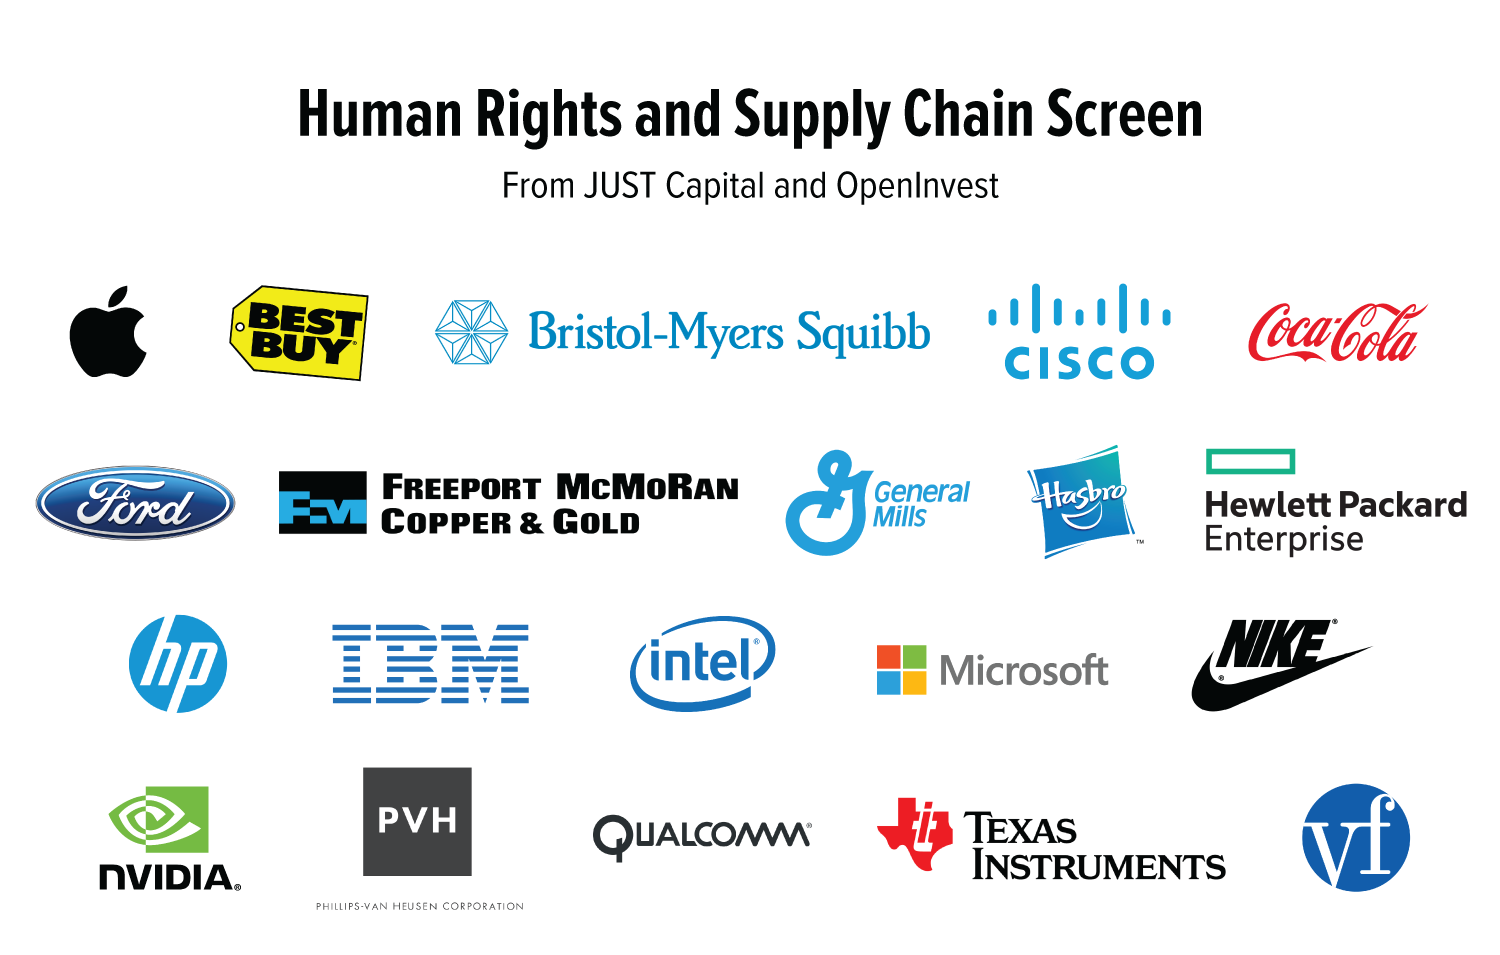 Human Rights and Supply Chain Screen